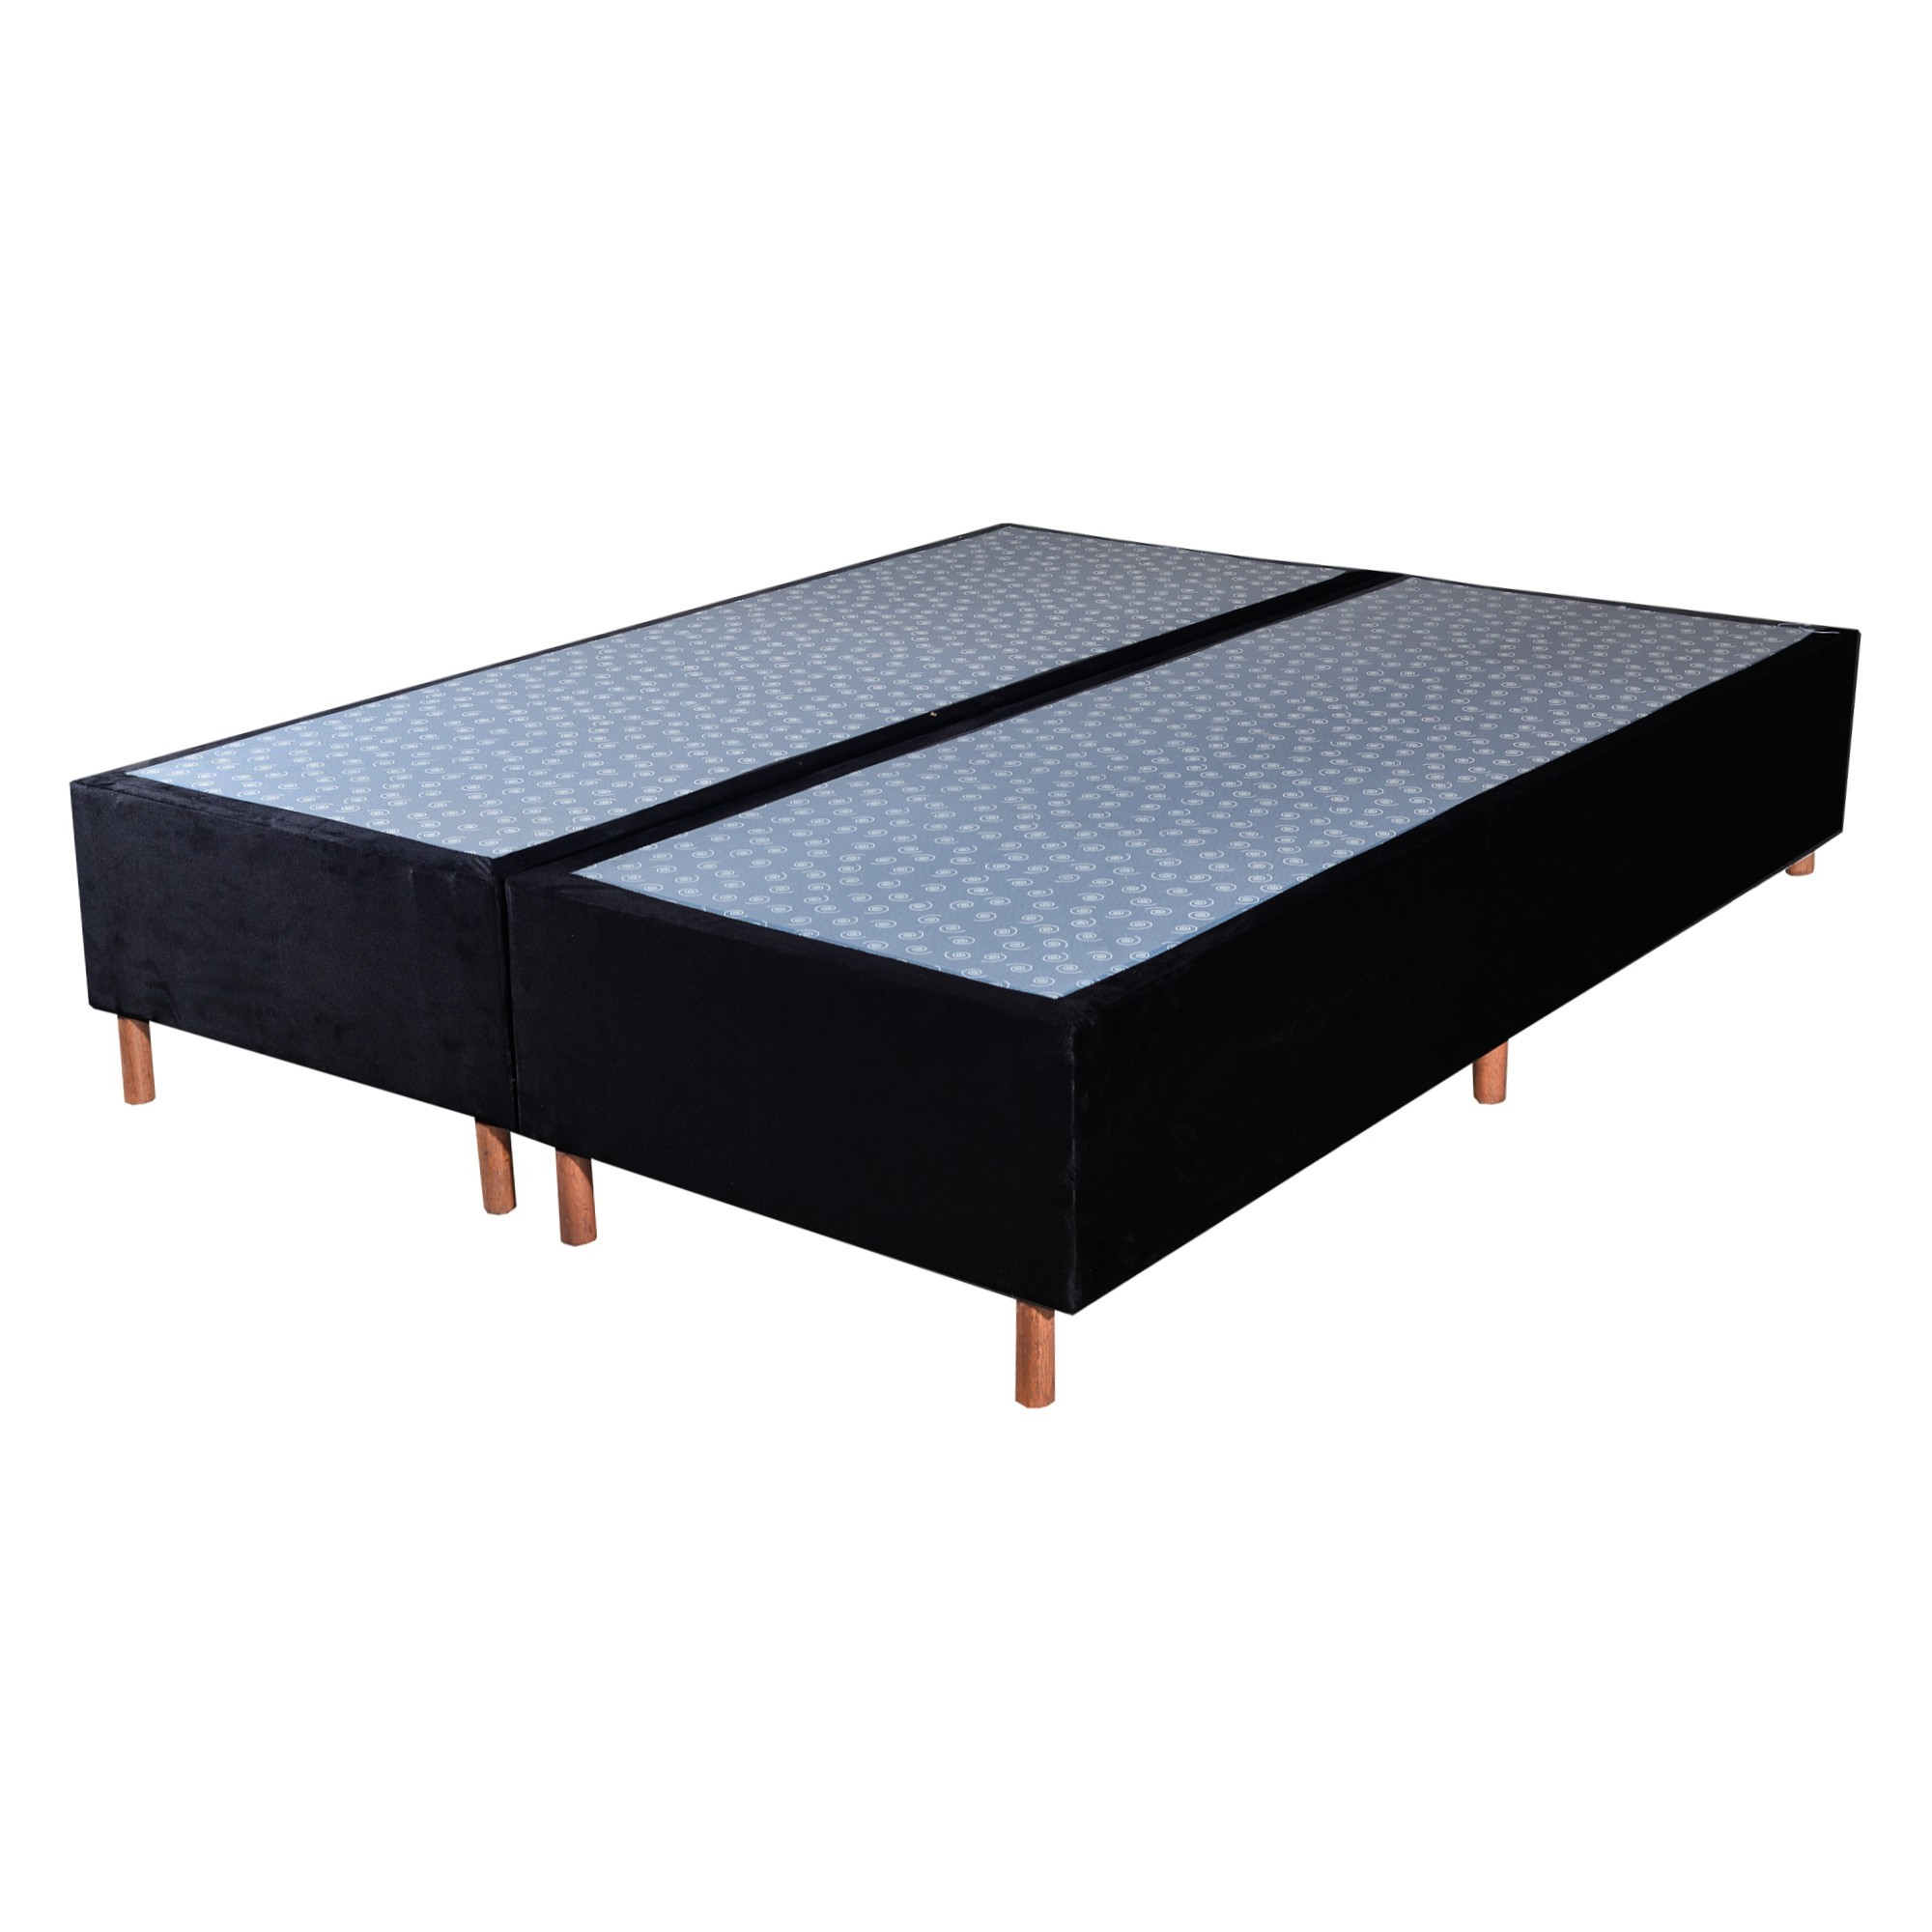 Cama Box Base King Veludo Preto 193x203x30